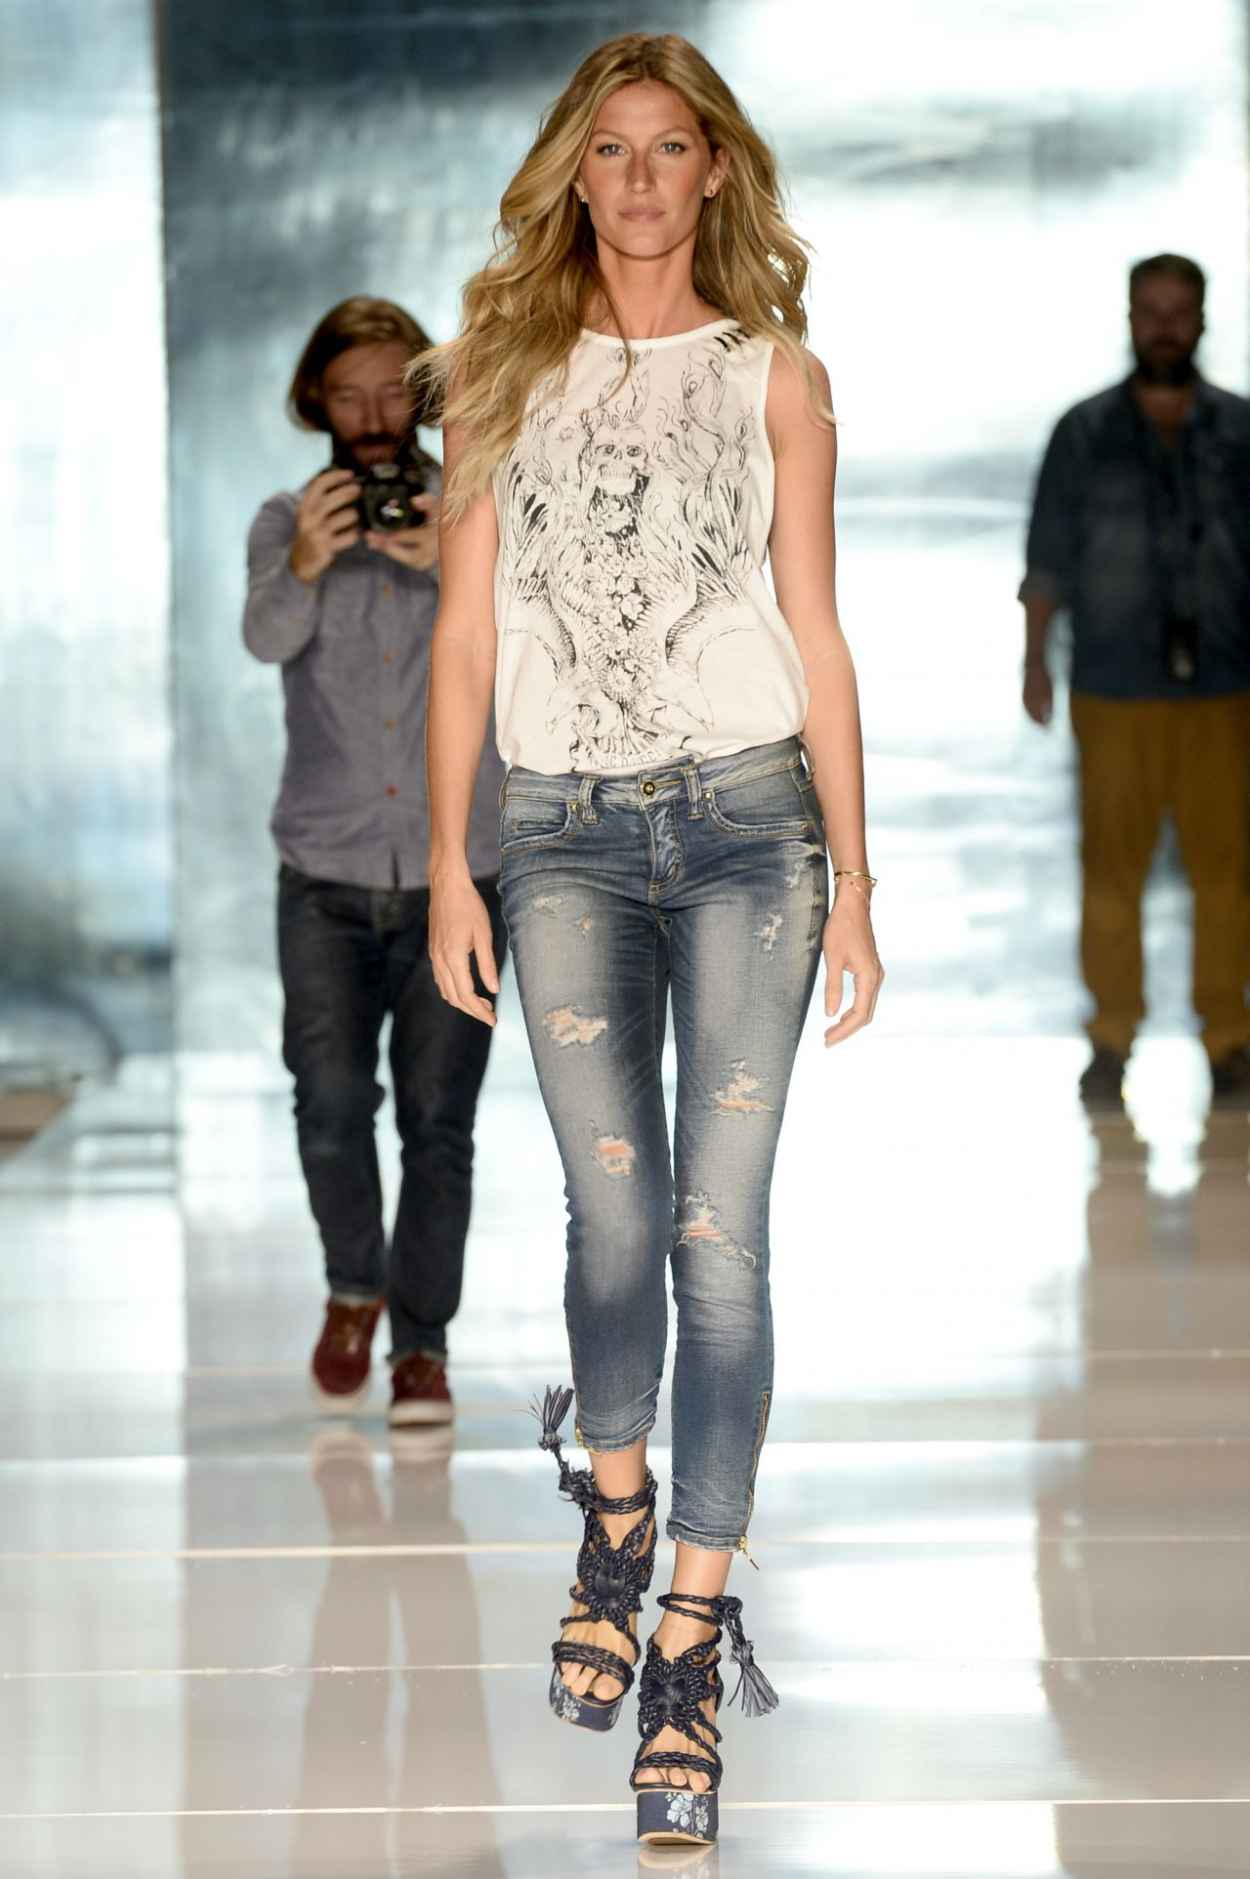 Gisele Bundchen Colcci Summer 2015 Fashion Show April 2015